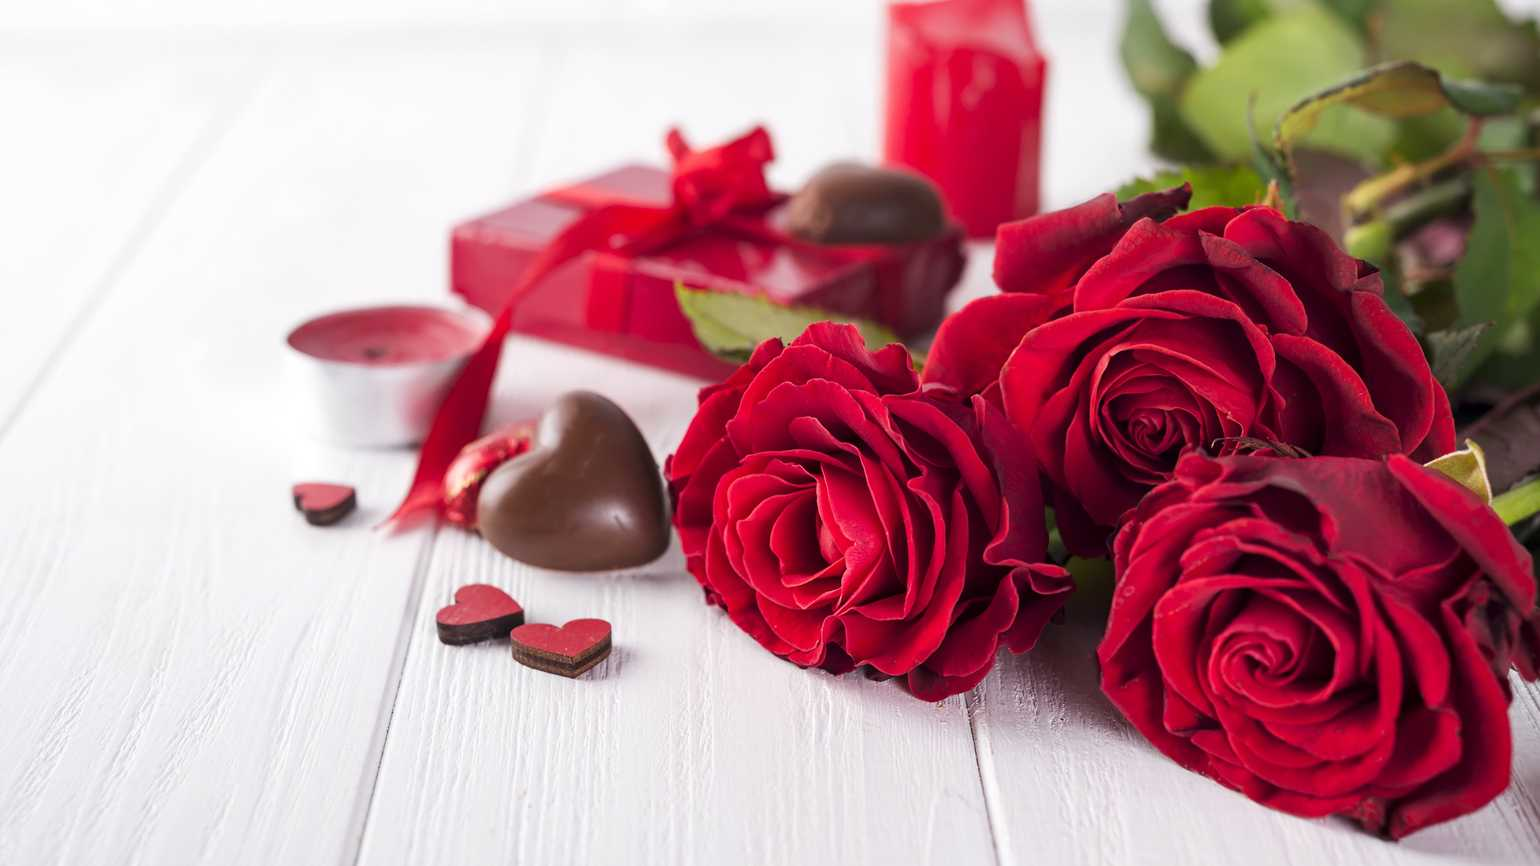 Beautiful red rose and dark chocolate for valentine's day on white wooden platform